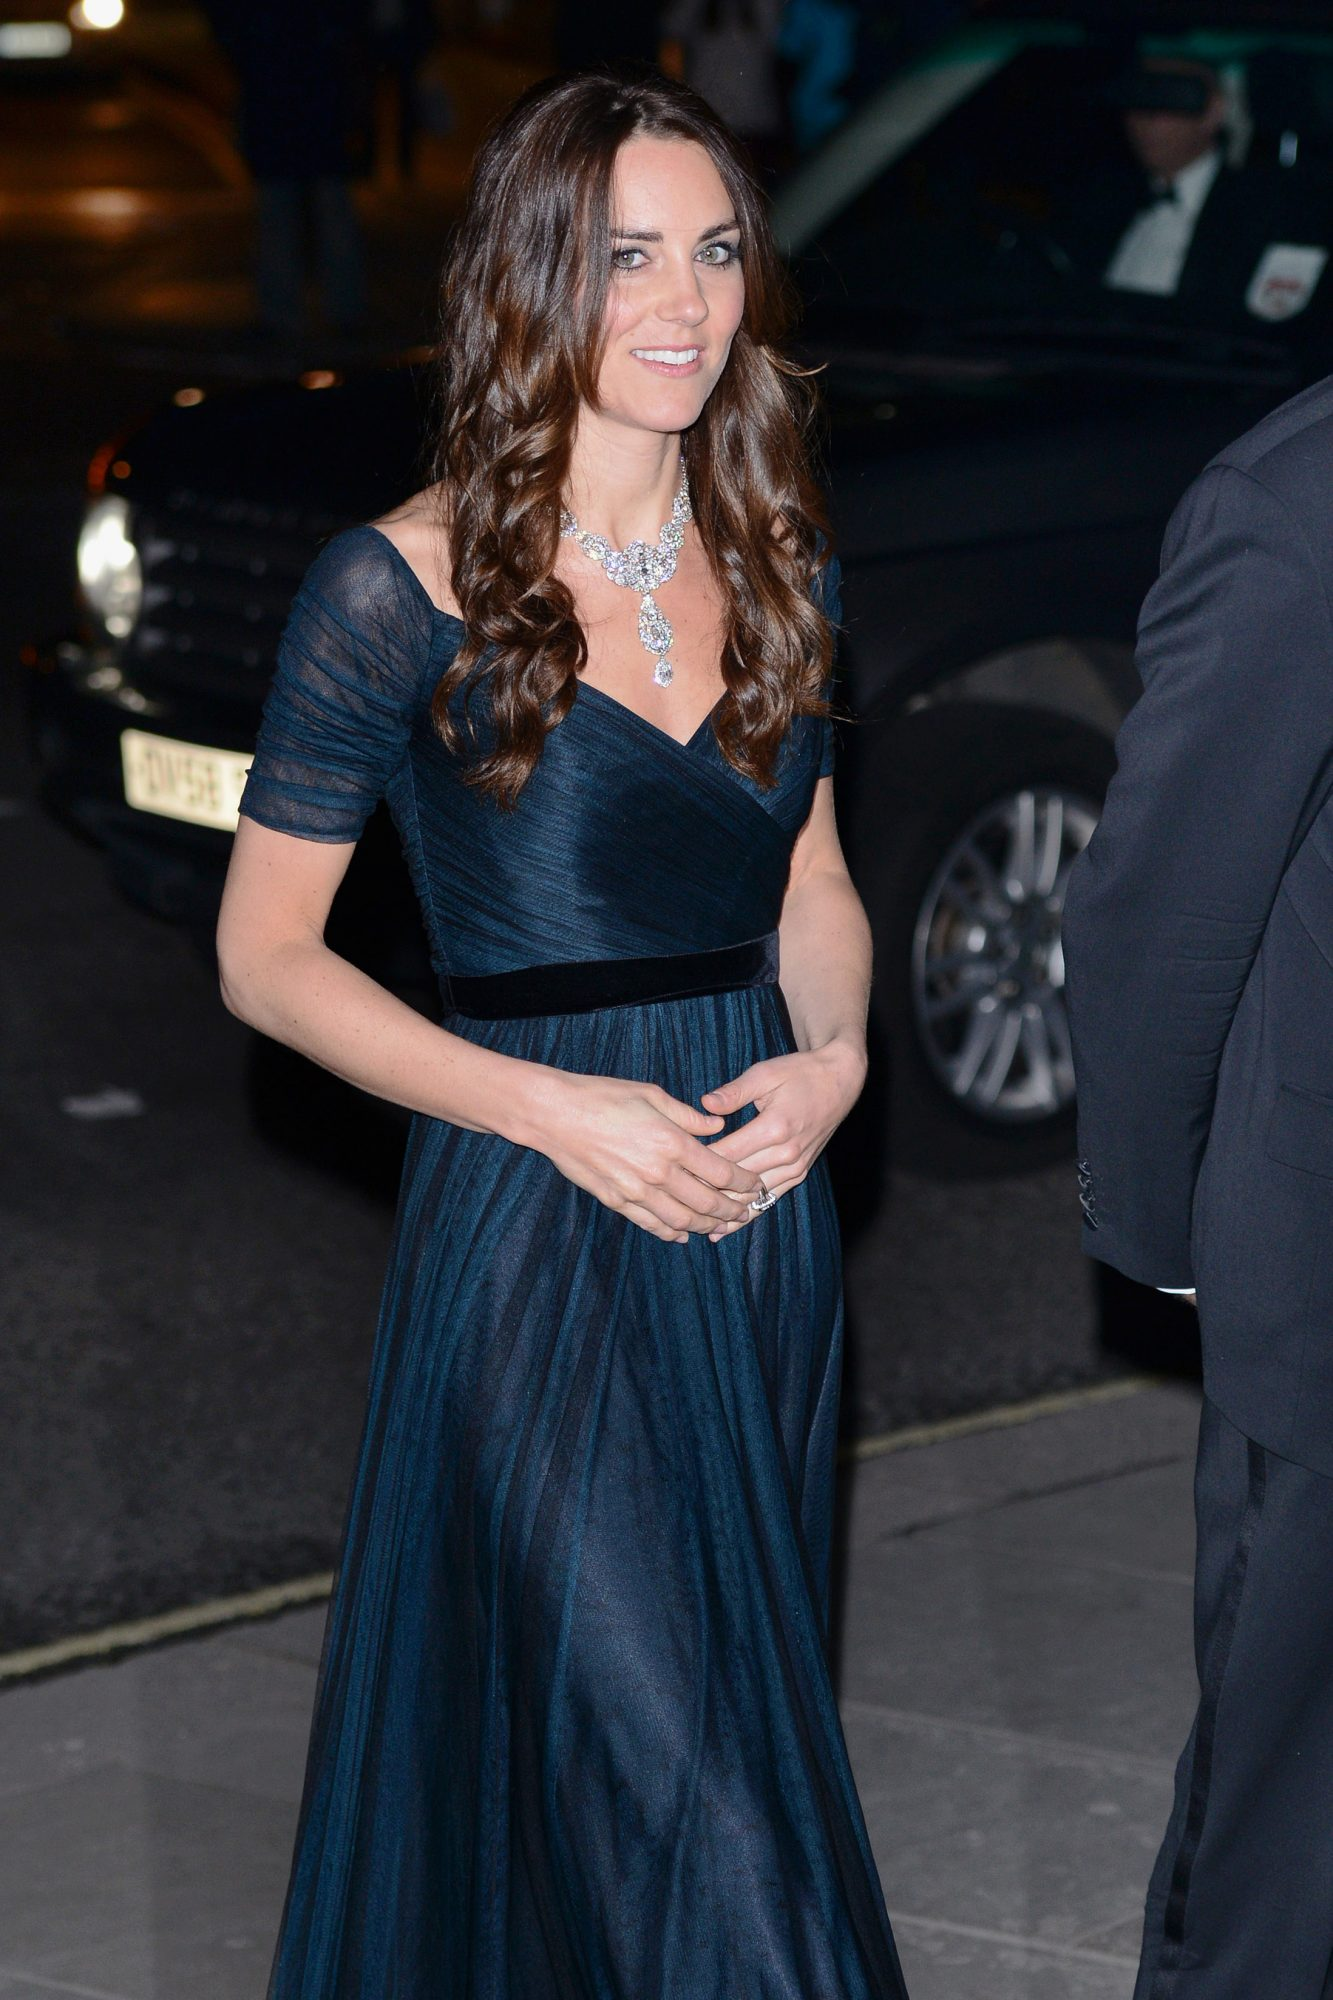 LONDON, ENGLAND - FEBRUARY 11: Catherine, Duchess of Cambridge attends The Portrait Gala 2014: Collecting To Inspire at the National Portrait Gallery on February 11, 2014 in London, England. (Photo by Karwai Tang/WireImage)